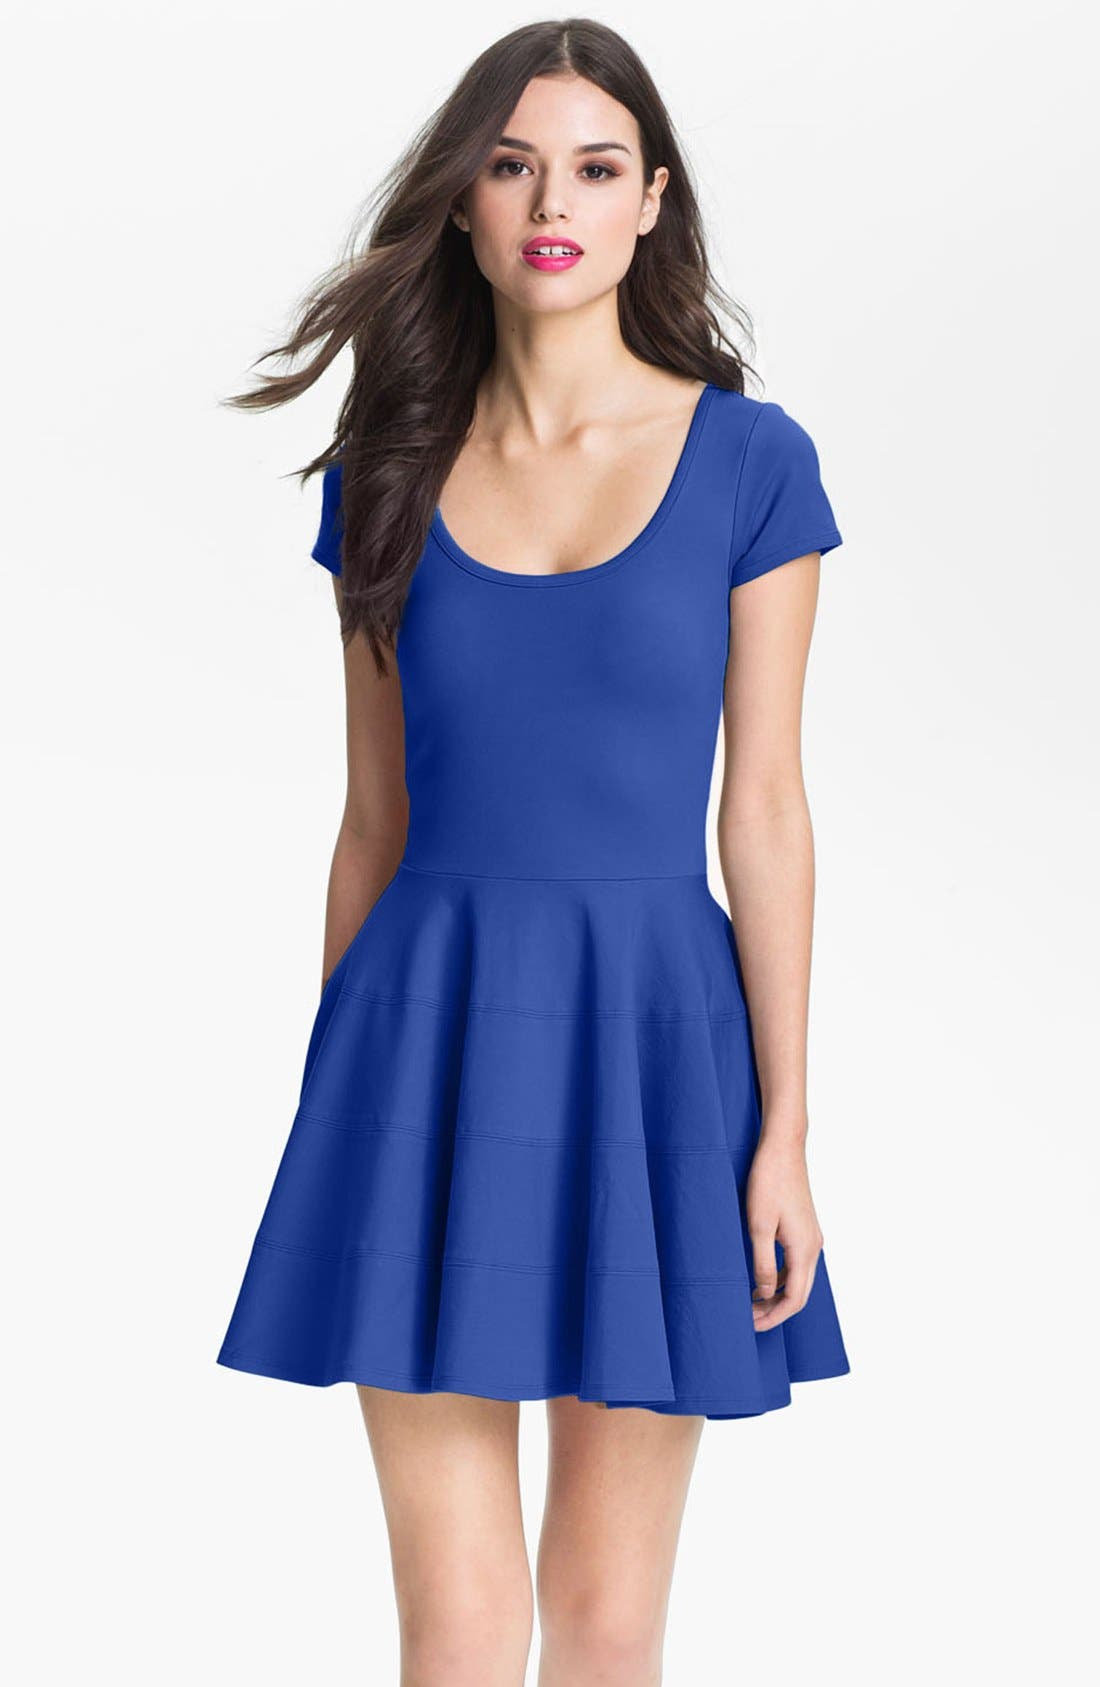 Alternate Image 1 Selected - Felicity & Coco Ponte Knit Fit & Flare Dress (Nordstrom Exclusive)